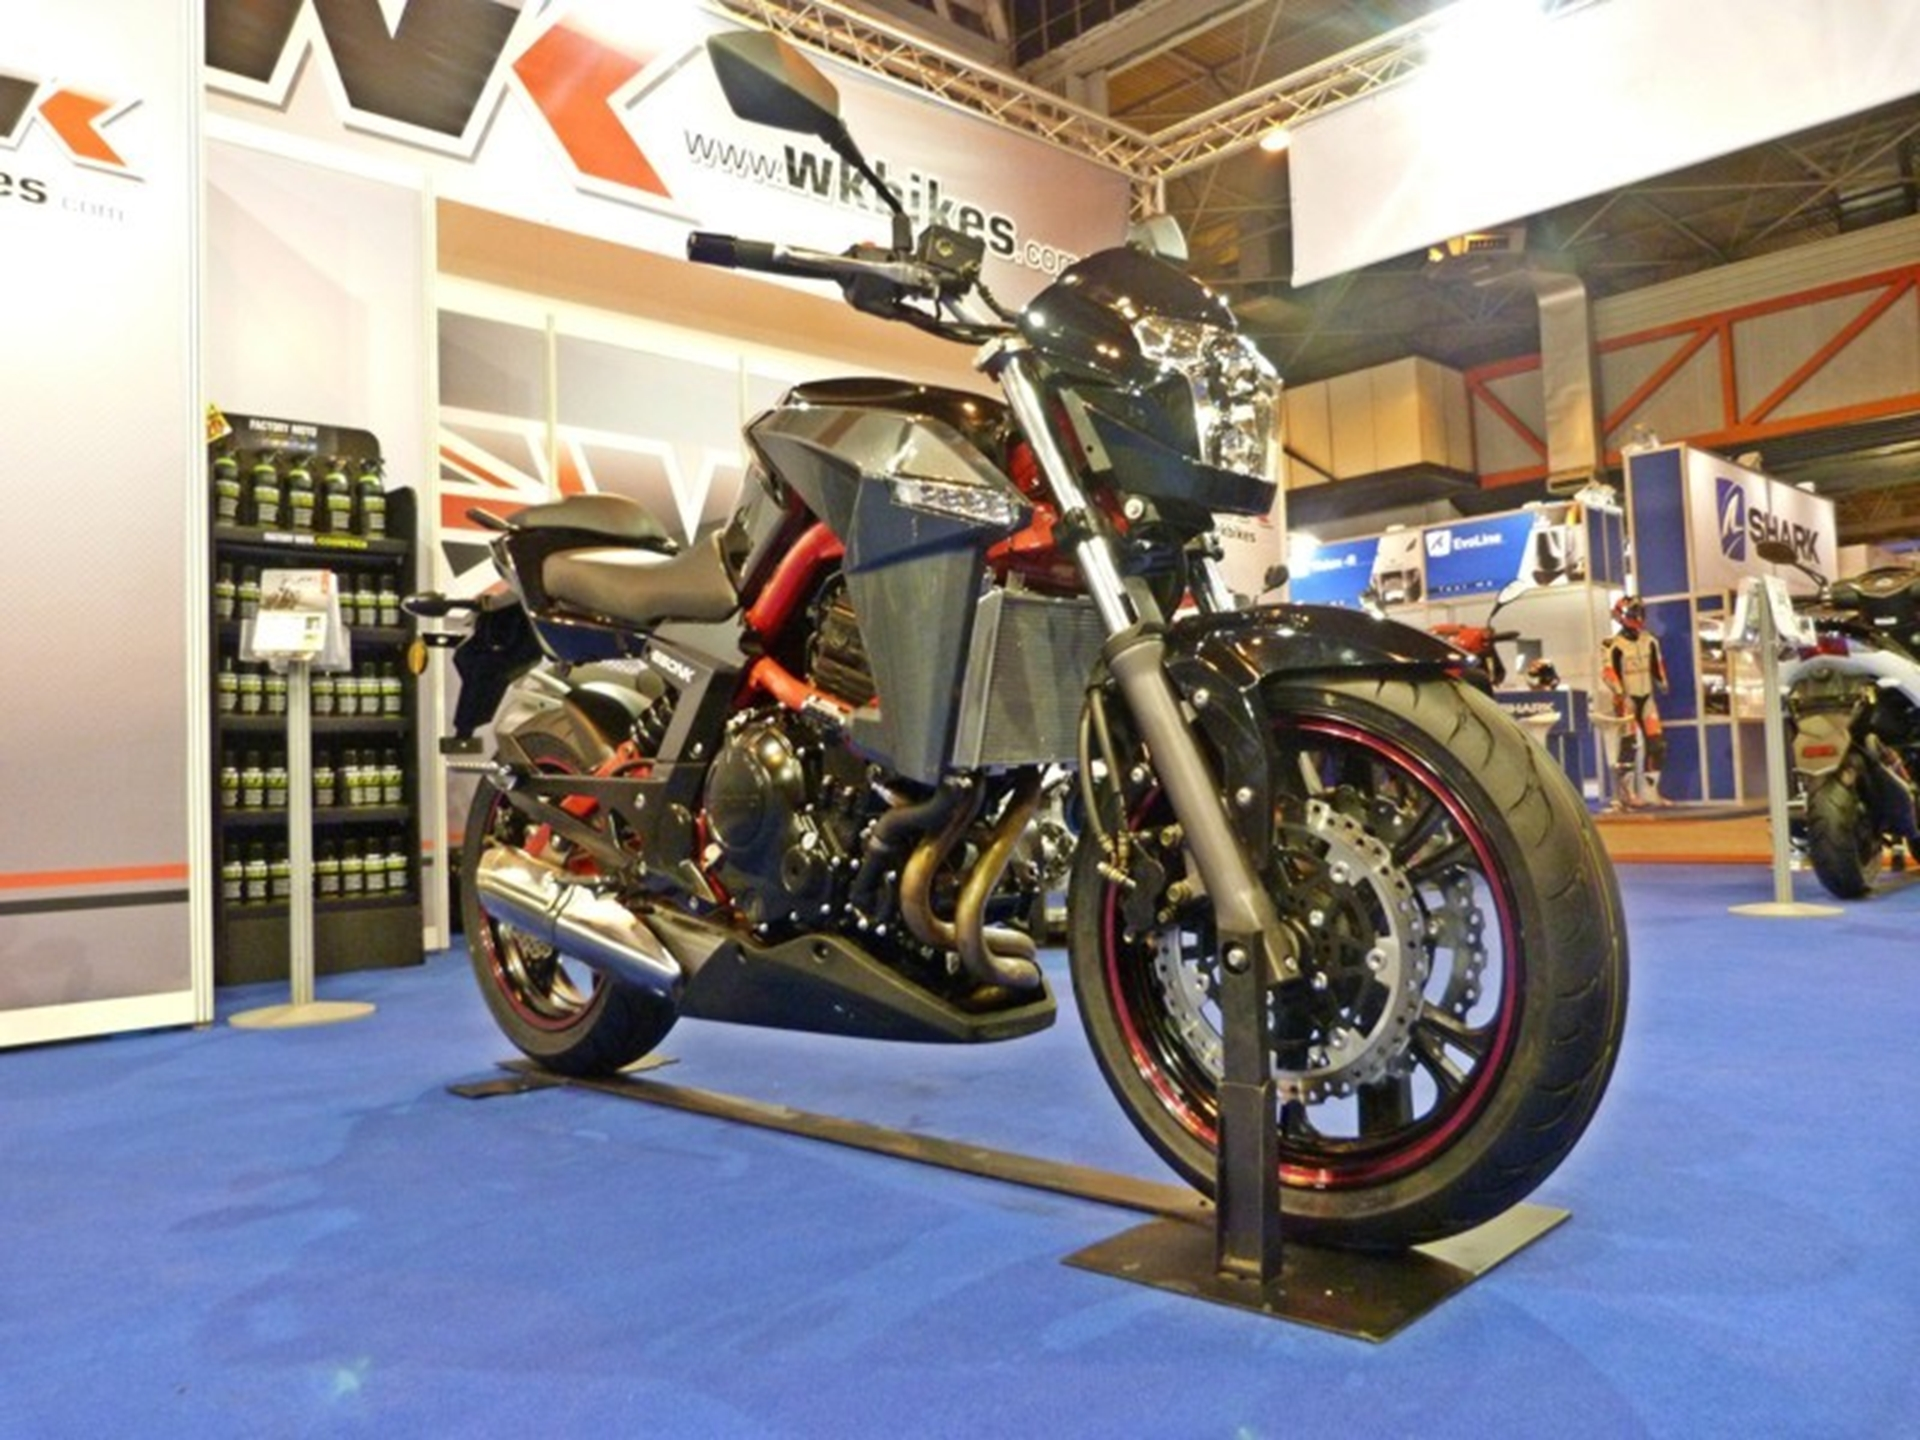 The WK650 will be landing in the UK next Spring...